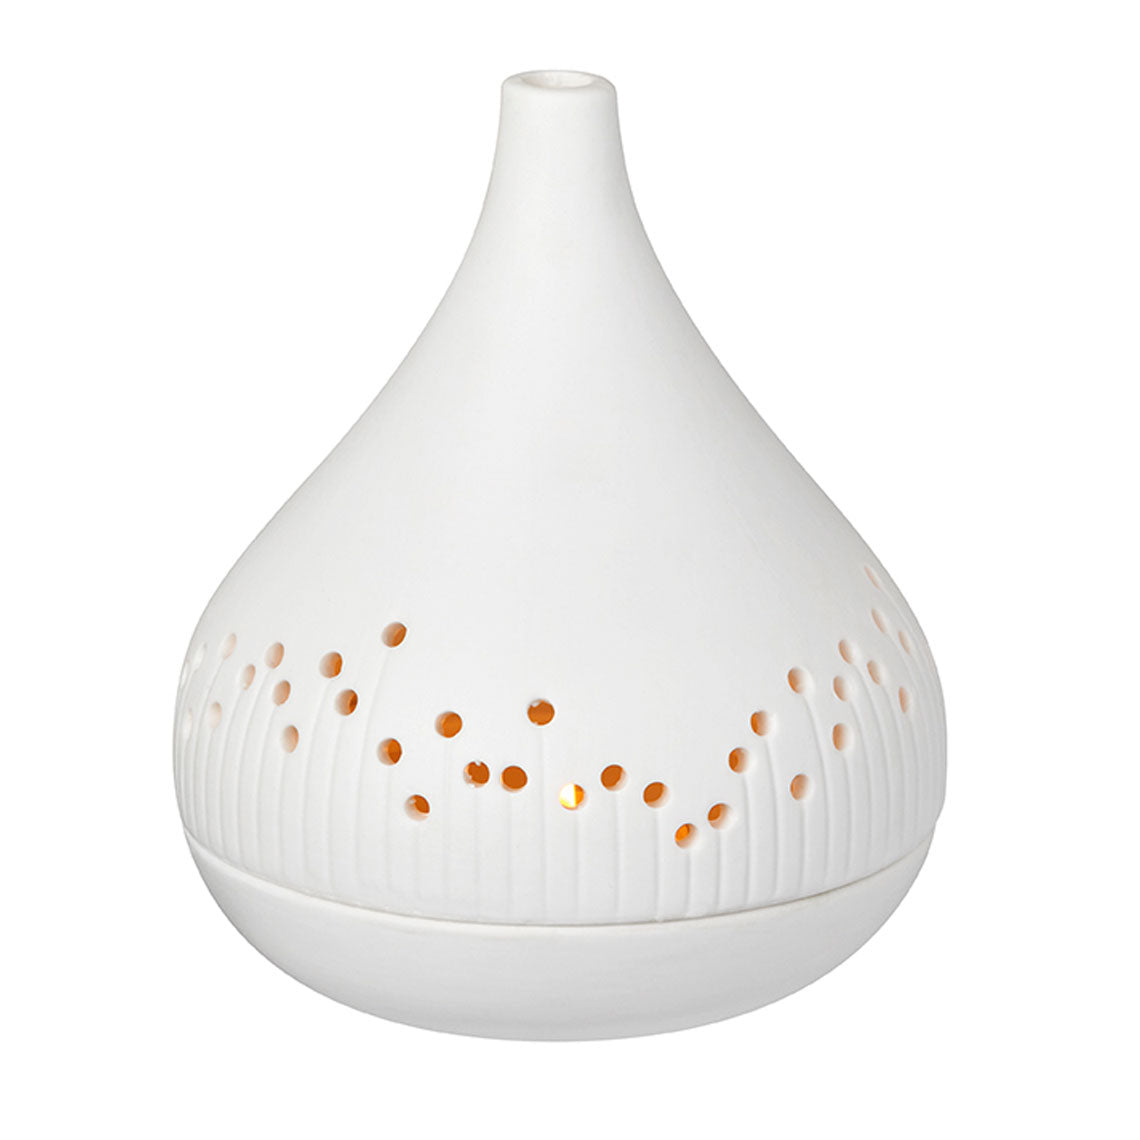 White Porcelain Wonder Light